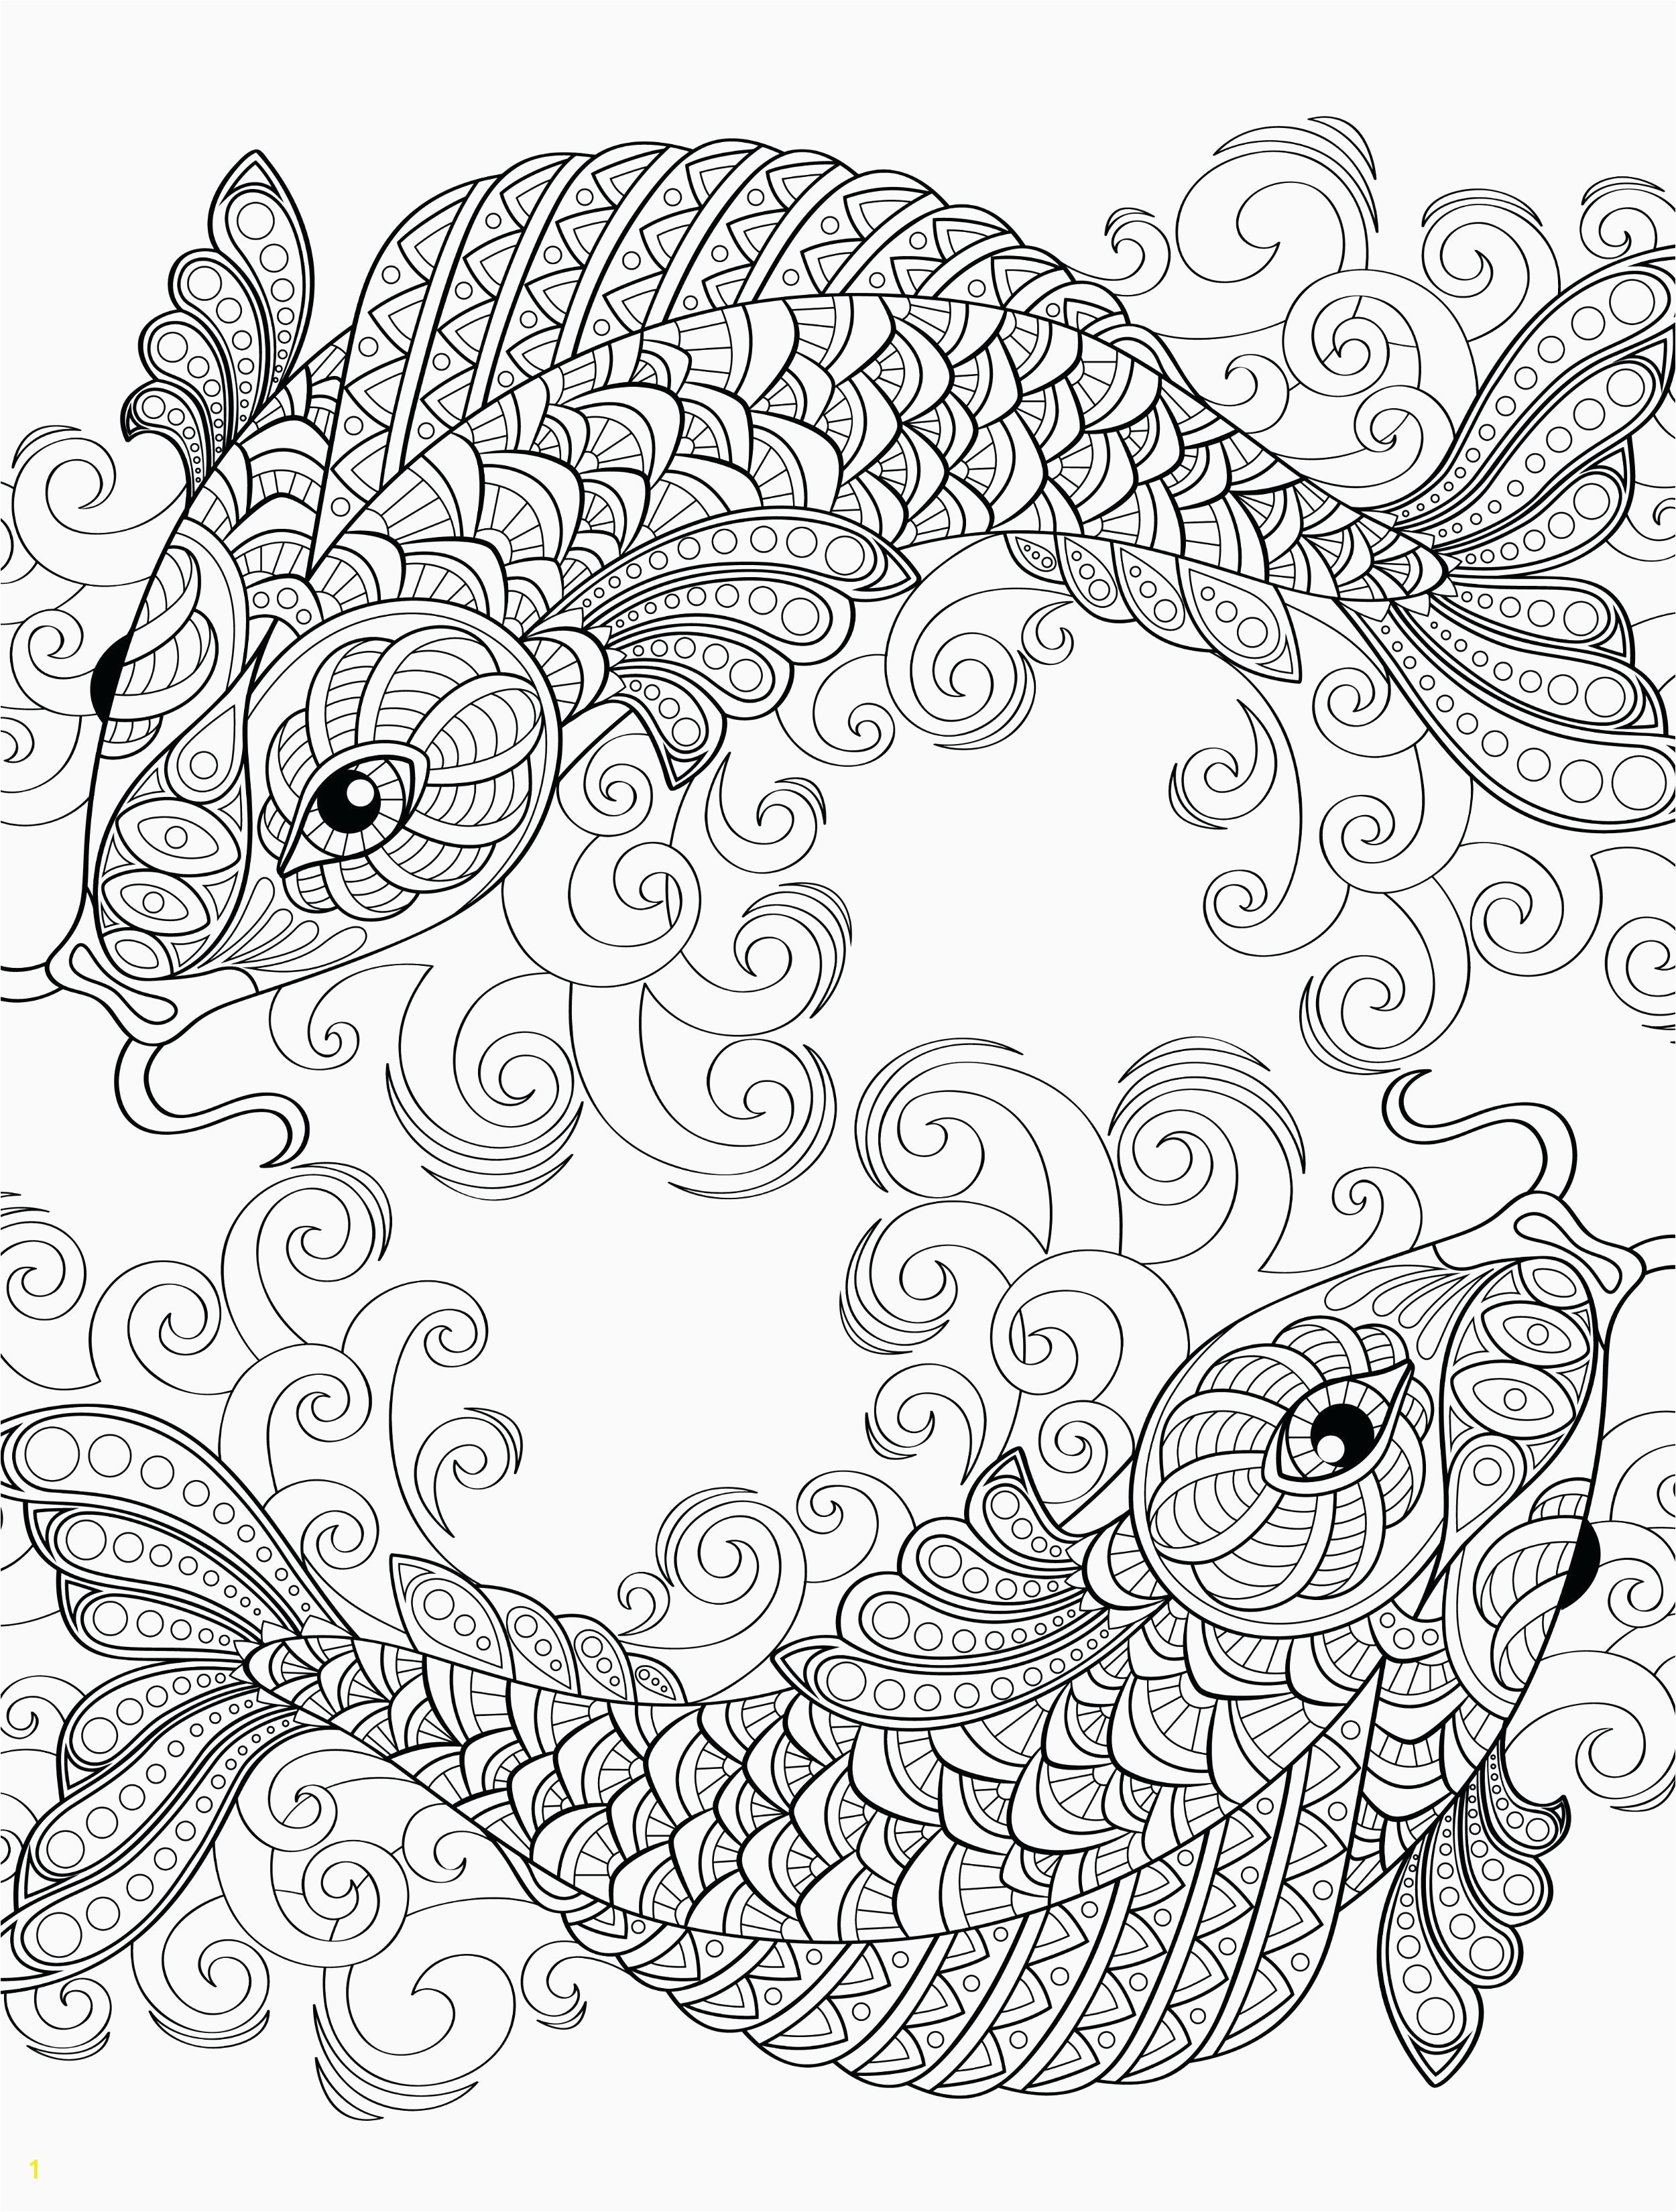 Jesus and Thomas Coloring Pages Awesome Free Fish Coloring Pages New Disciples Od Jesus Christ Catching Stock